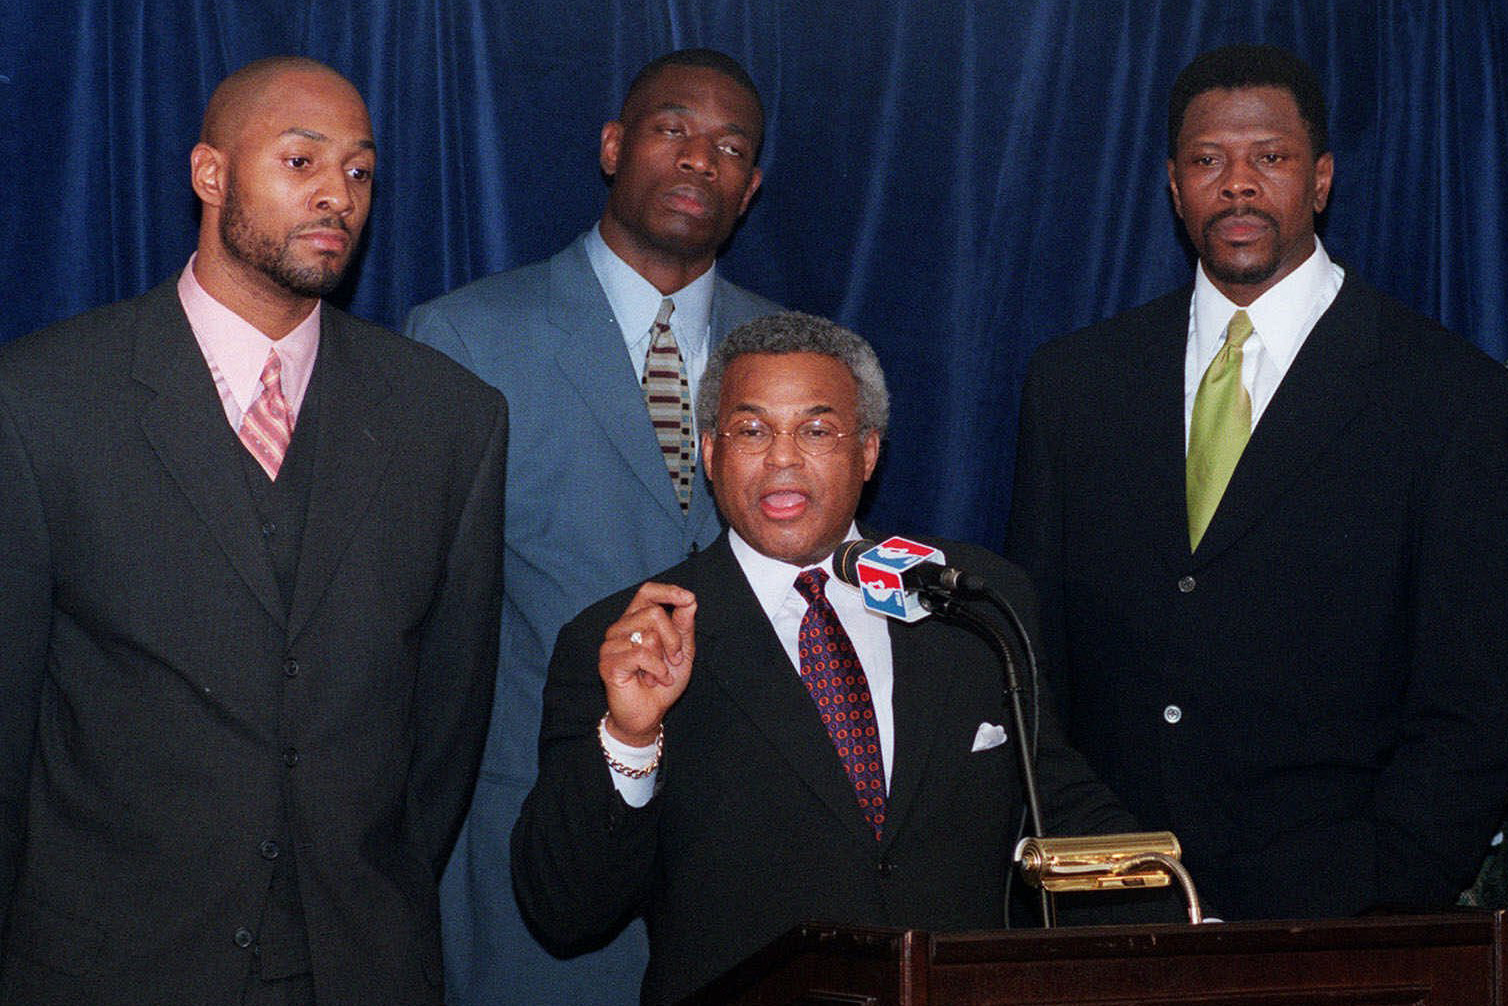 National Basketball Players Association leader Billy Hunter speaks to the media, backed up by Alonzo Mourning, left, Dikembe Mutombo, center left, Patrick Ewing, center right, and Danny Schayes, after negotiators failed to reach an agreement in the NBA lockout talks Thursday night, Dec. 3, 1998, in New York.